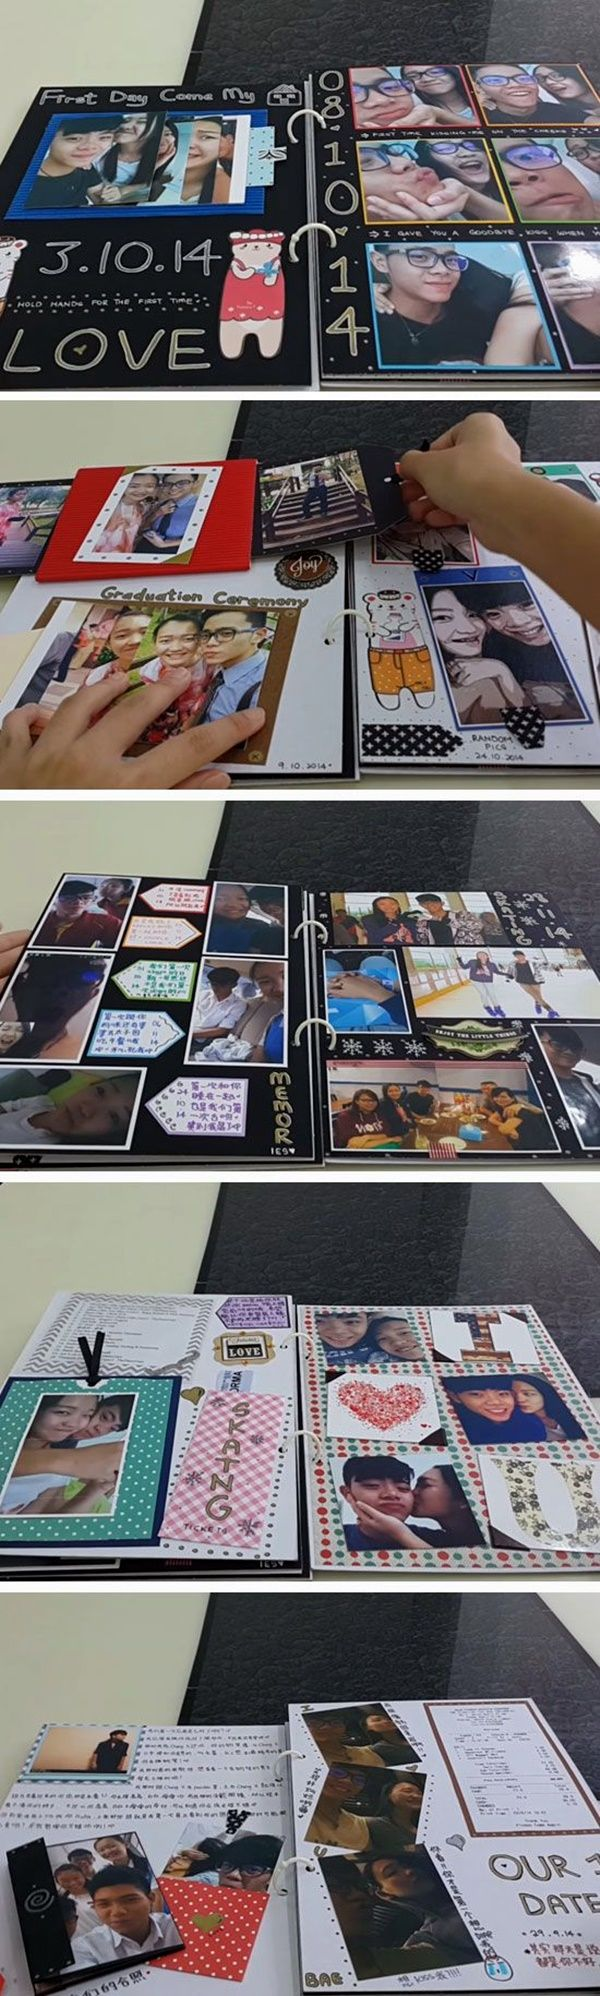 NOTHING CAN MATCH THE CHARM OF COLLAGE BOOK <3 Homemade Valentines Day Ideas for Him <3 60 Homemade Valentines Day Ideas for Him that're really CUTE ||| Fenzyme.com |||